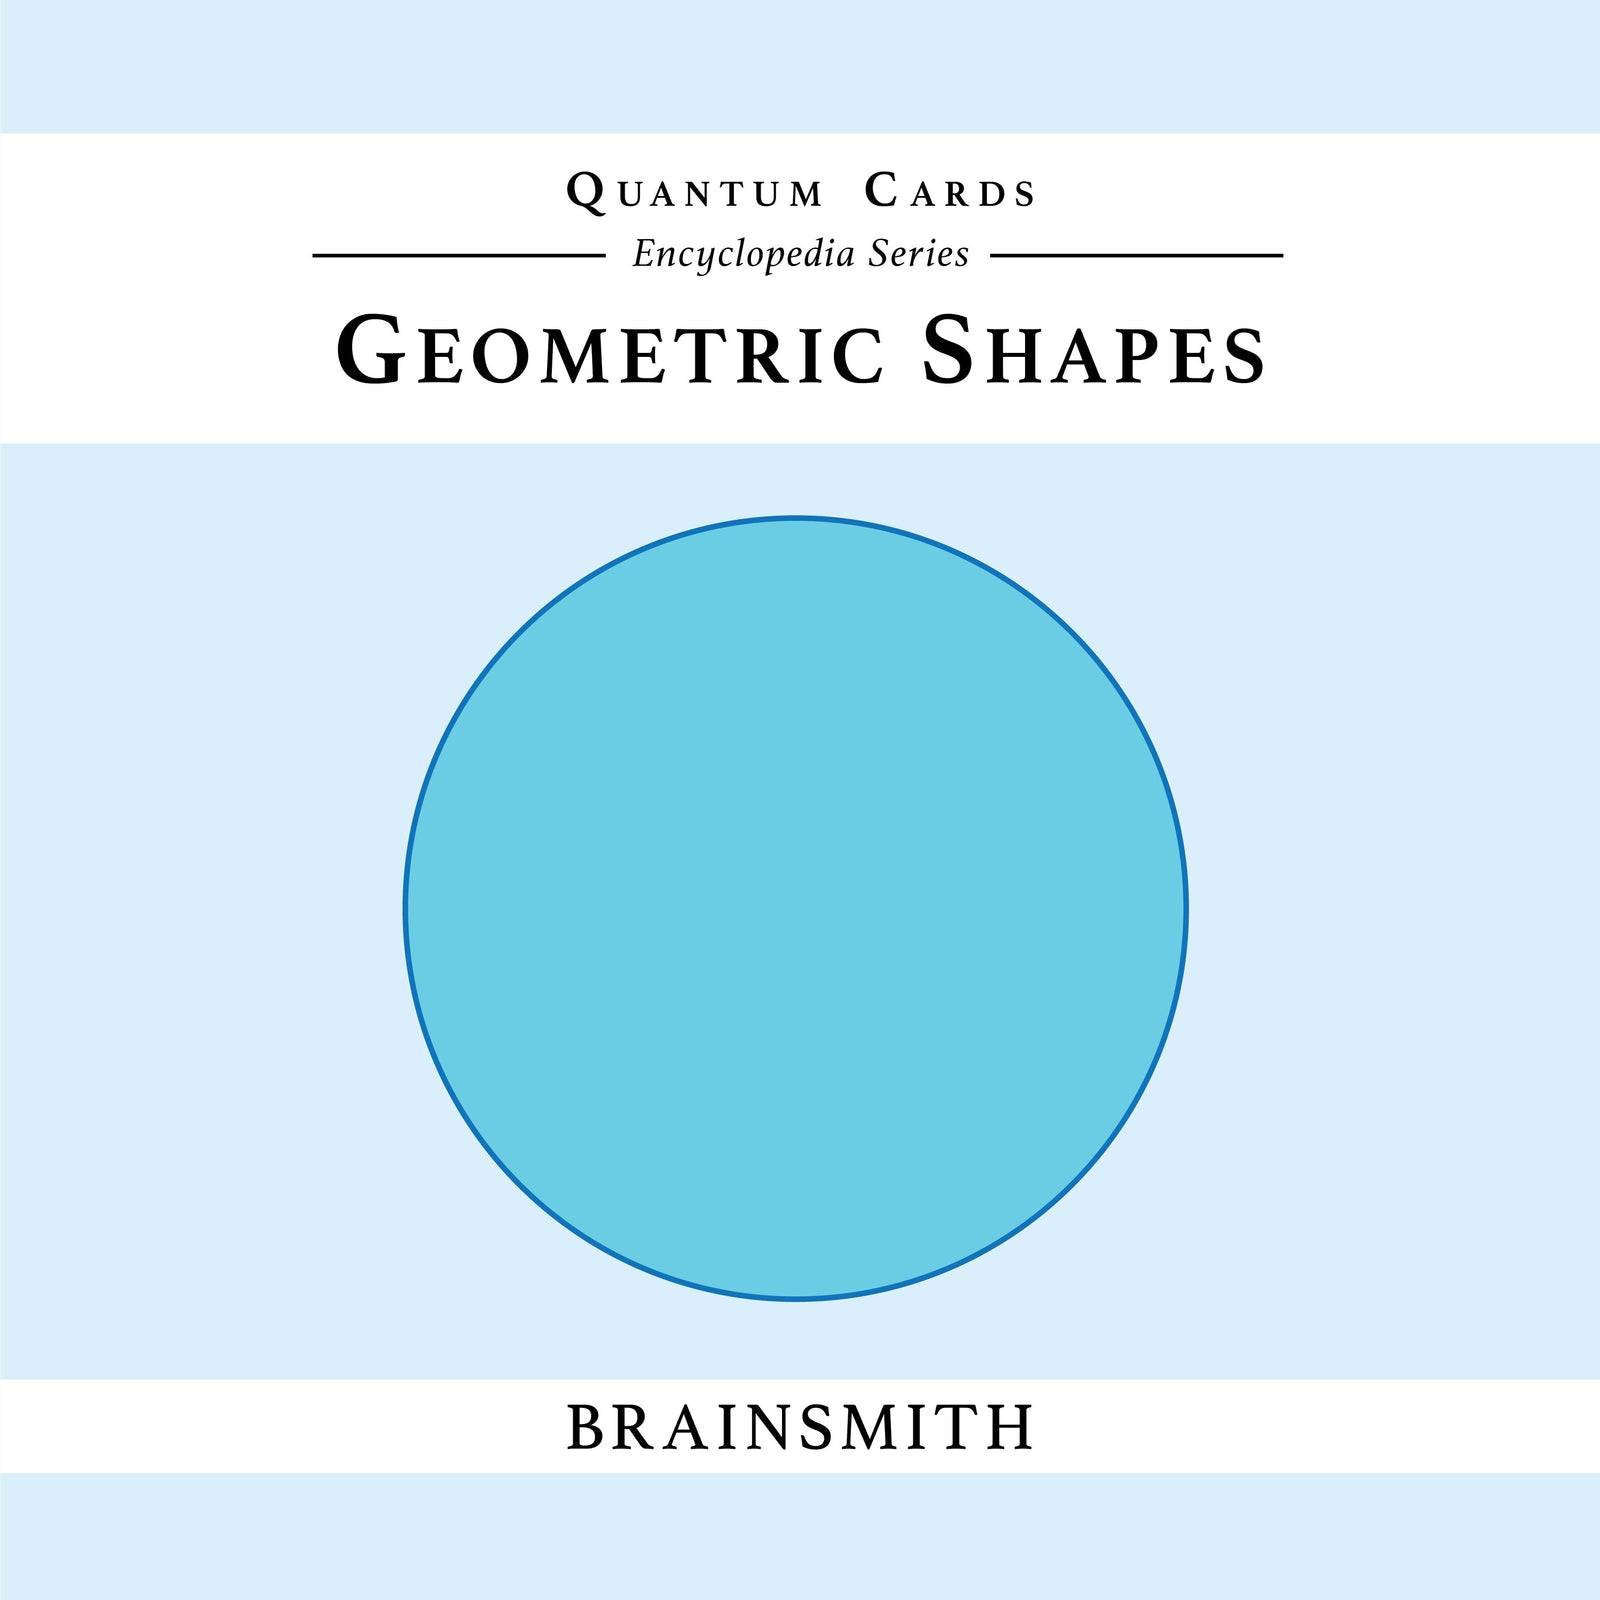 Geometric Shapes Flashcards for Kids, Geometric Shapes